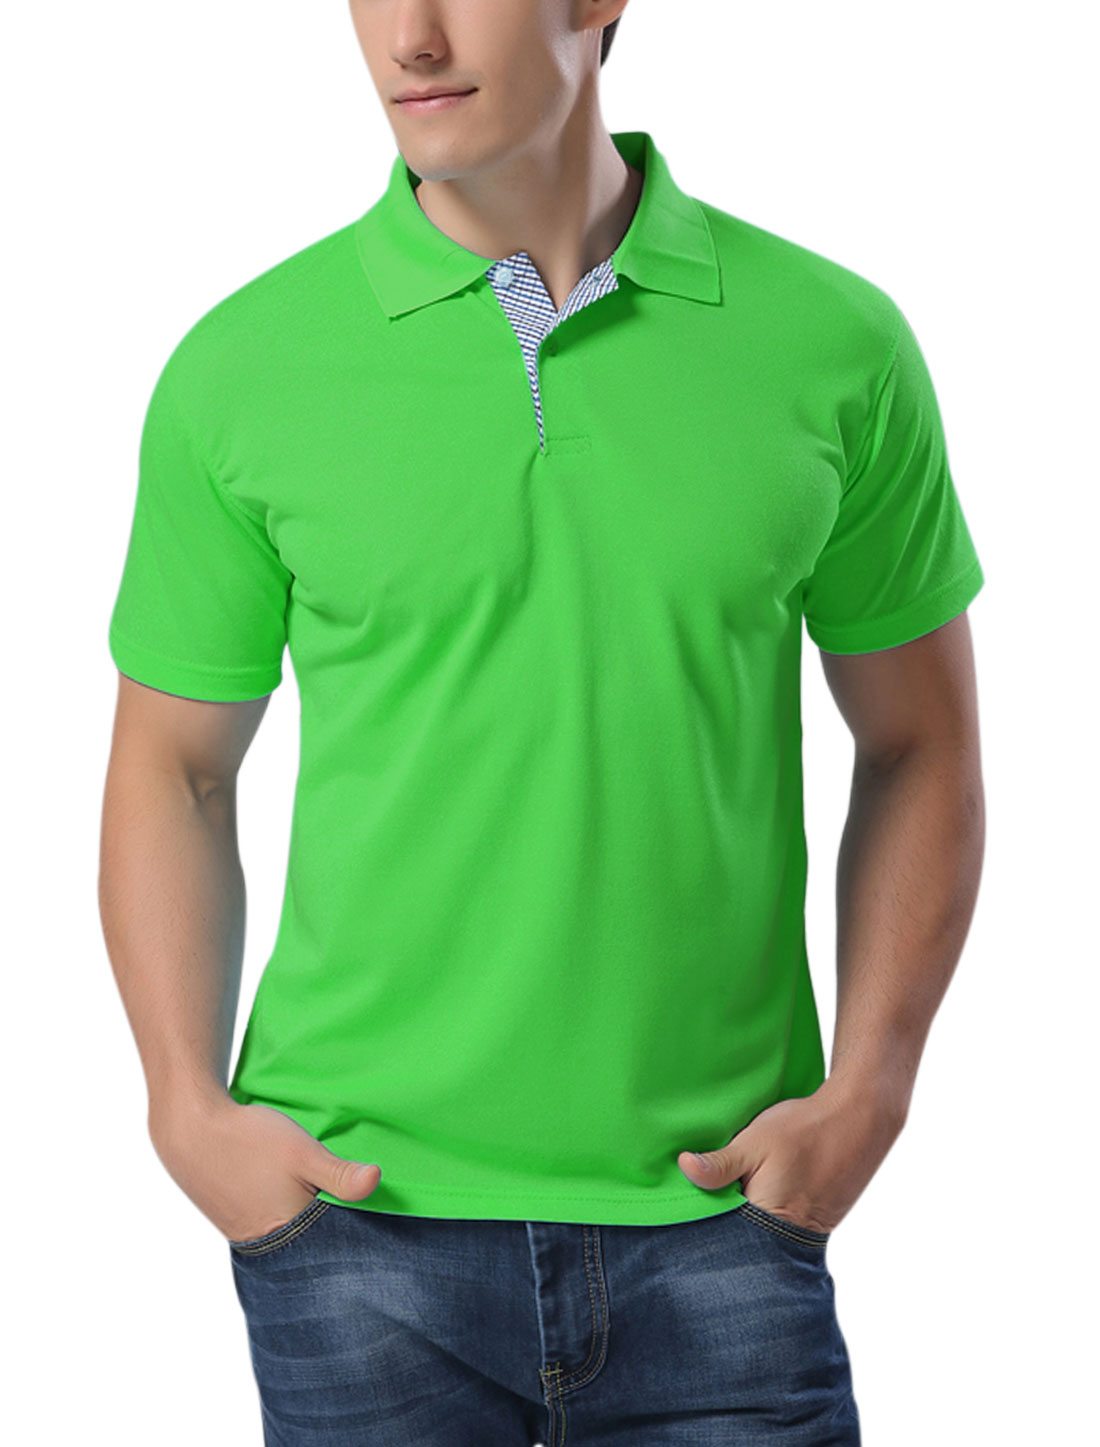 Man Short Sleeves Buttons Upper Polo T Shirts Green M